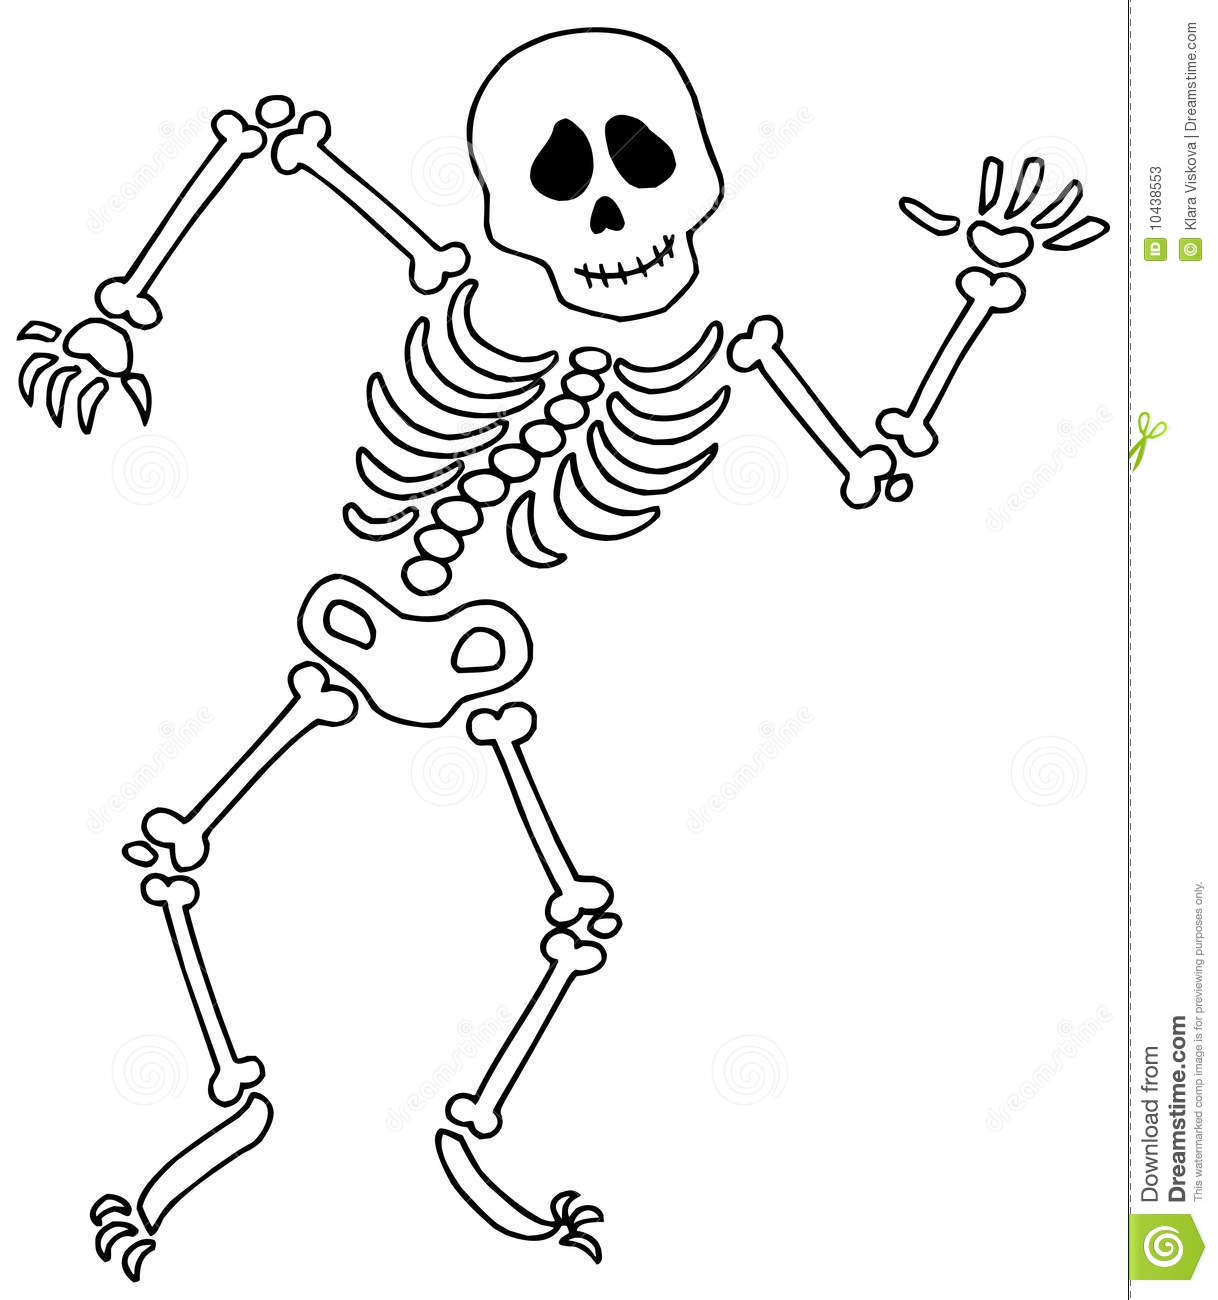 Sleleton clipart Clipart drawings Skeleton Download Skeleton